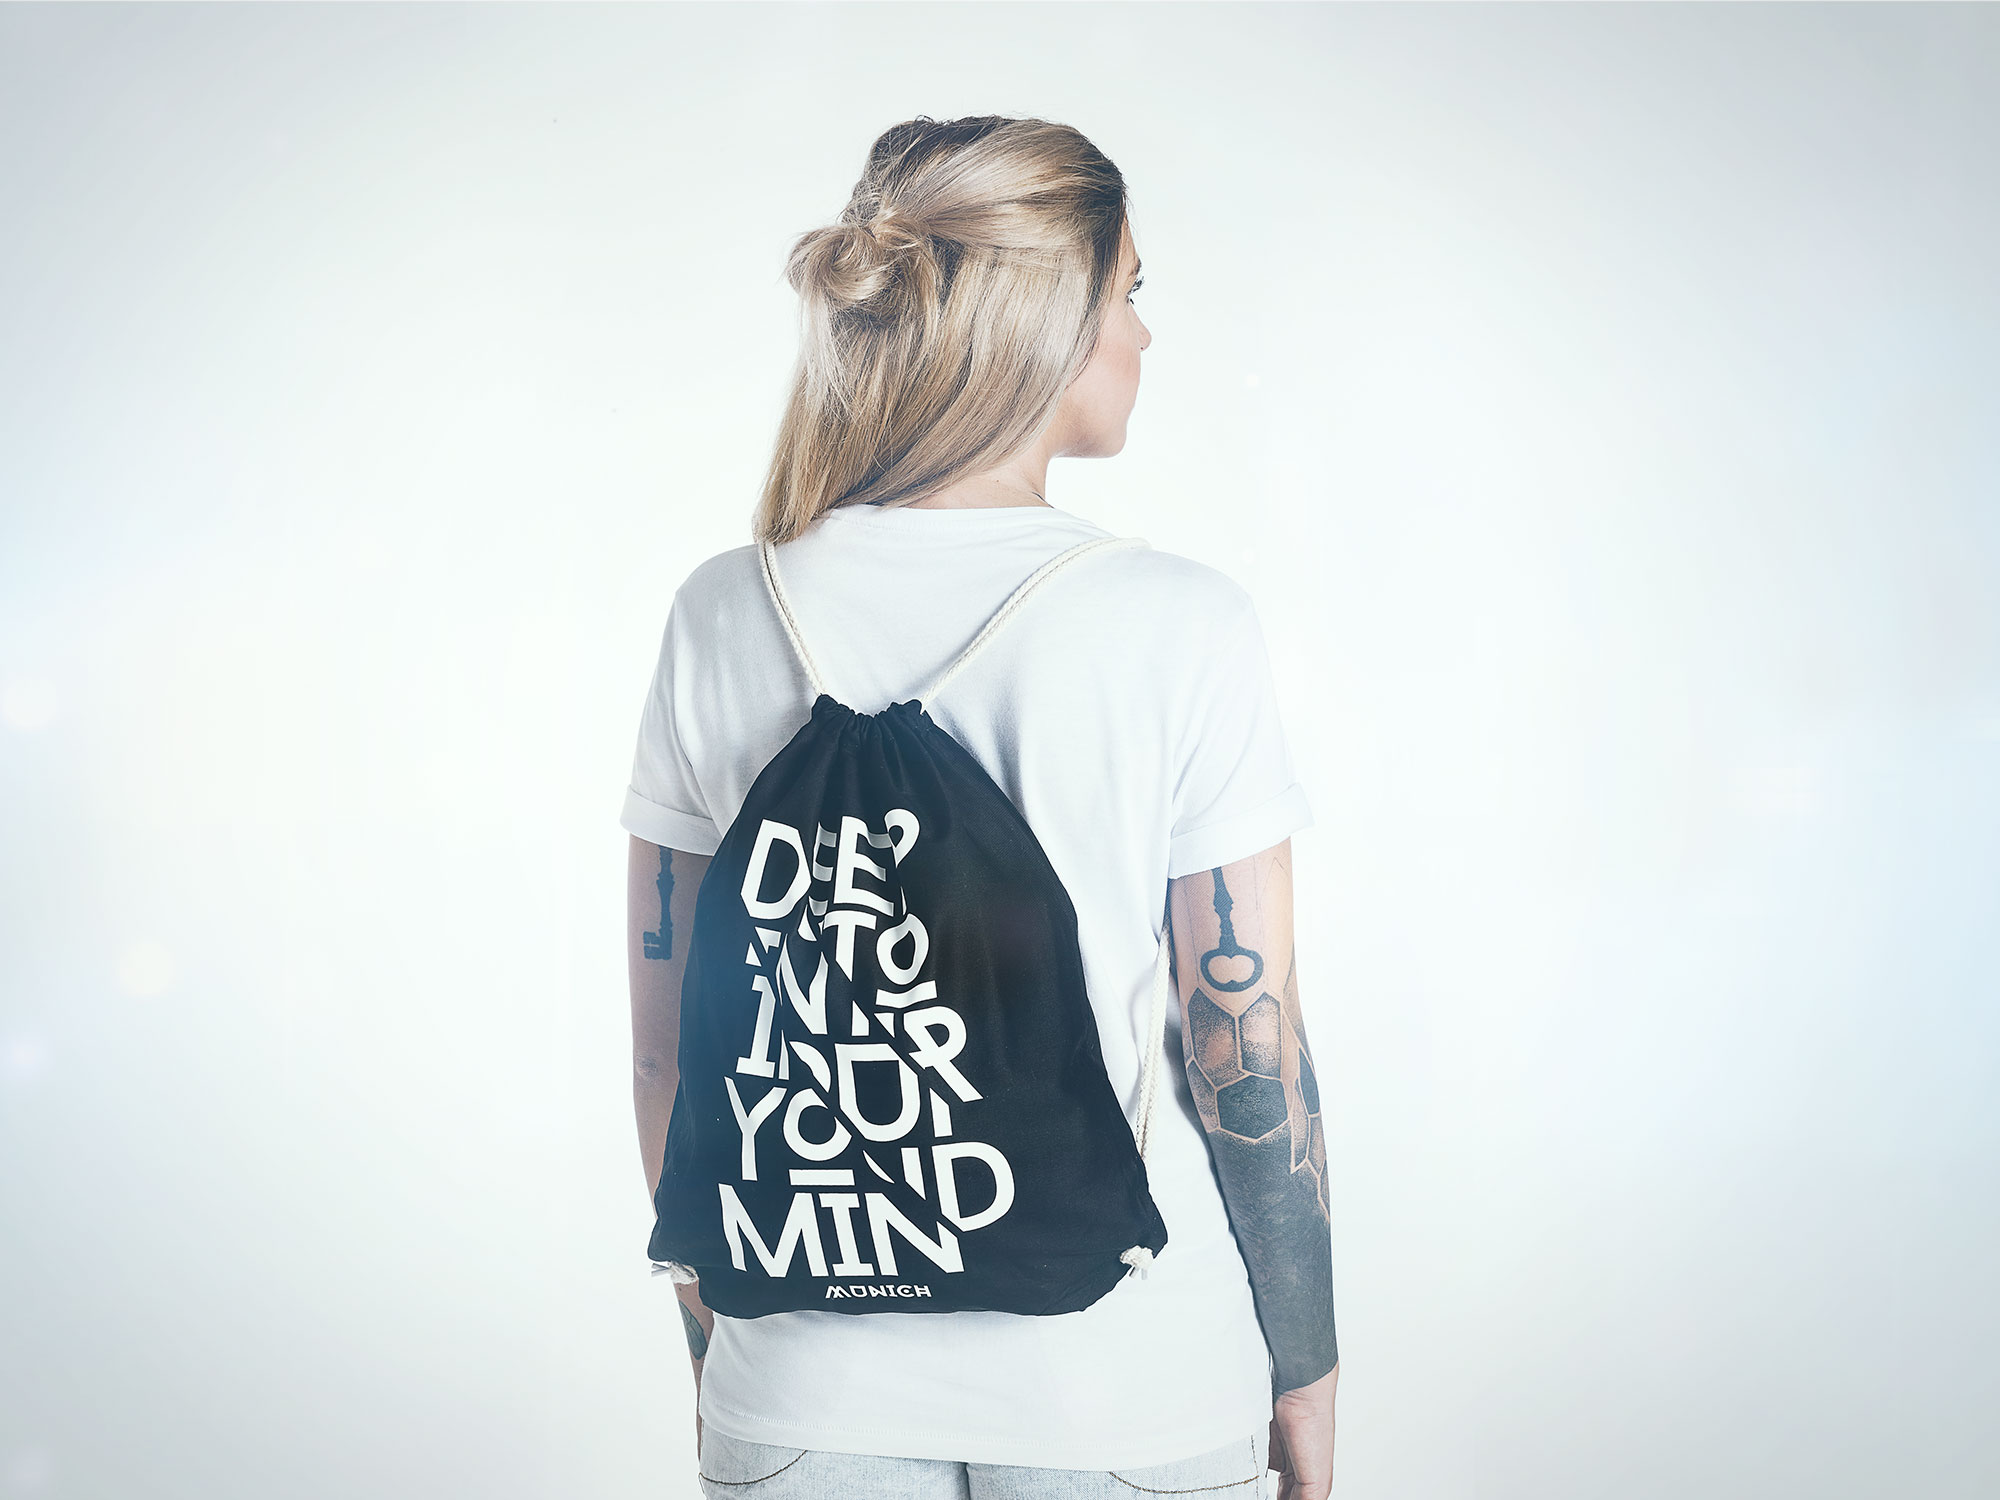 Deep_into_your_Mind_Shirt_08